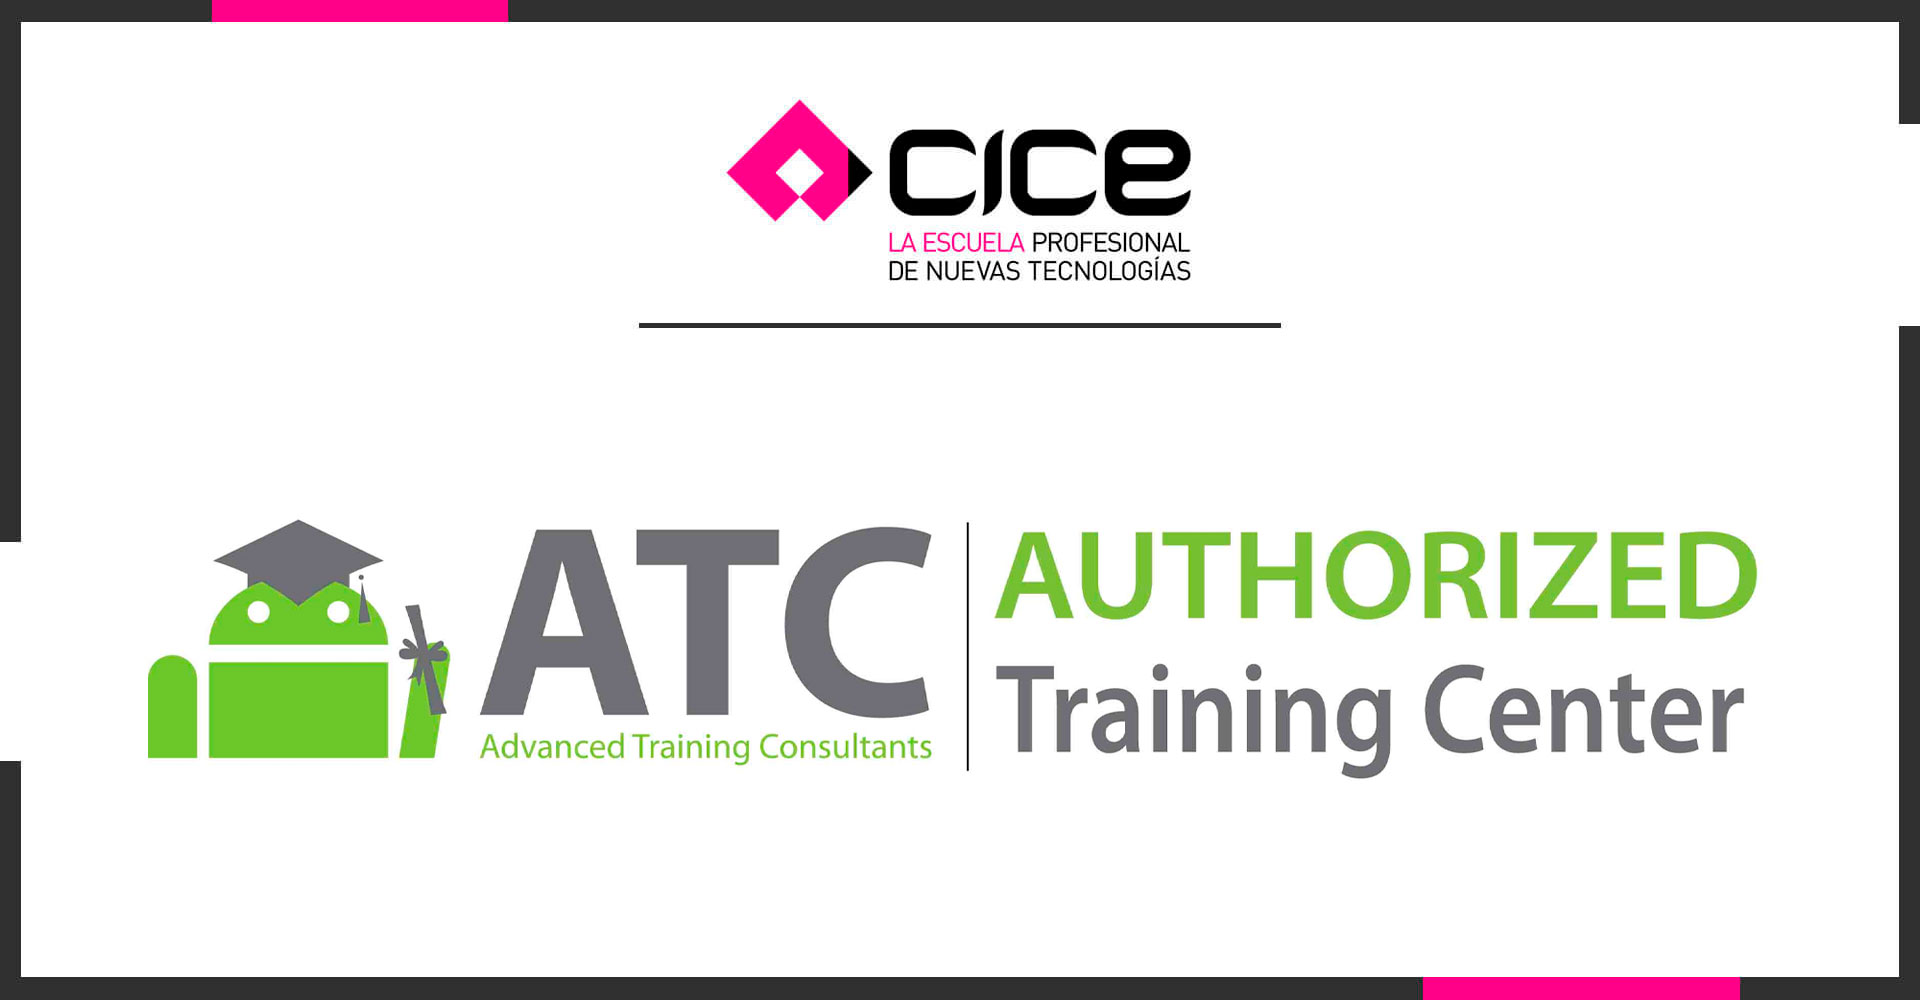 La Escuela CICE renueva como Authorized Training Center de Android